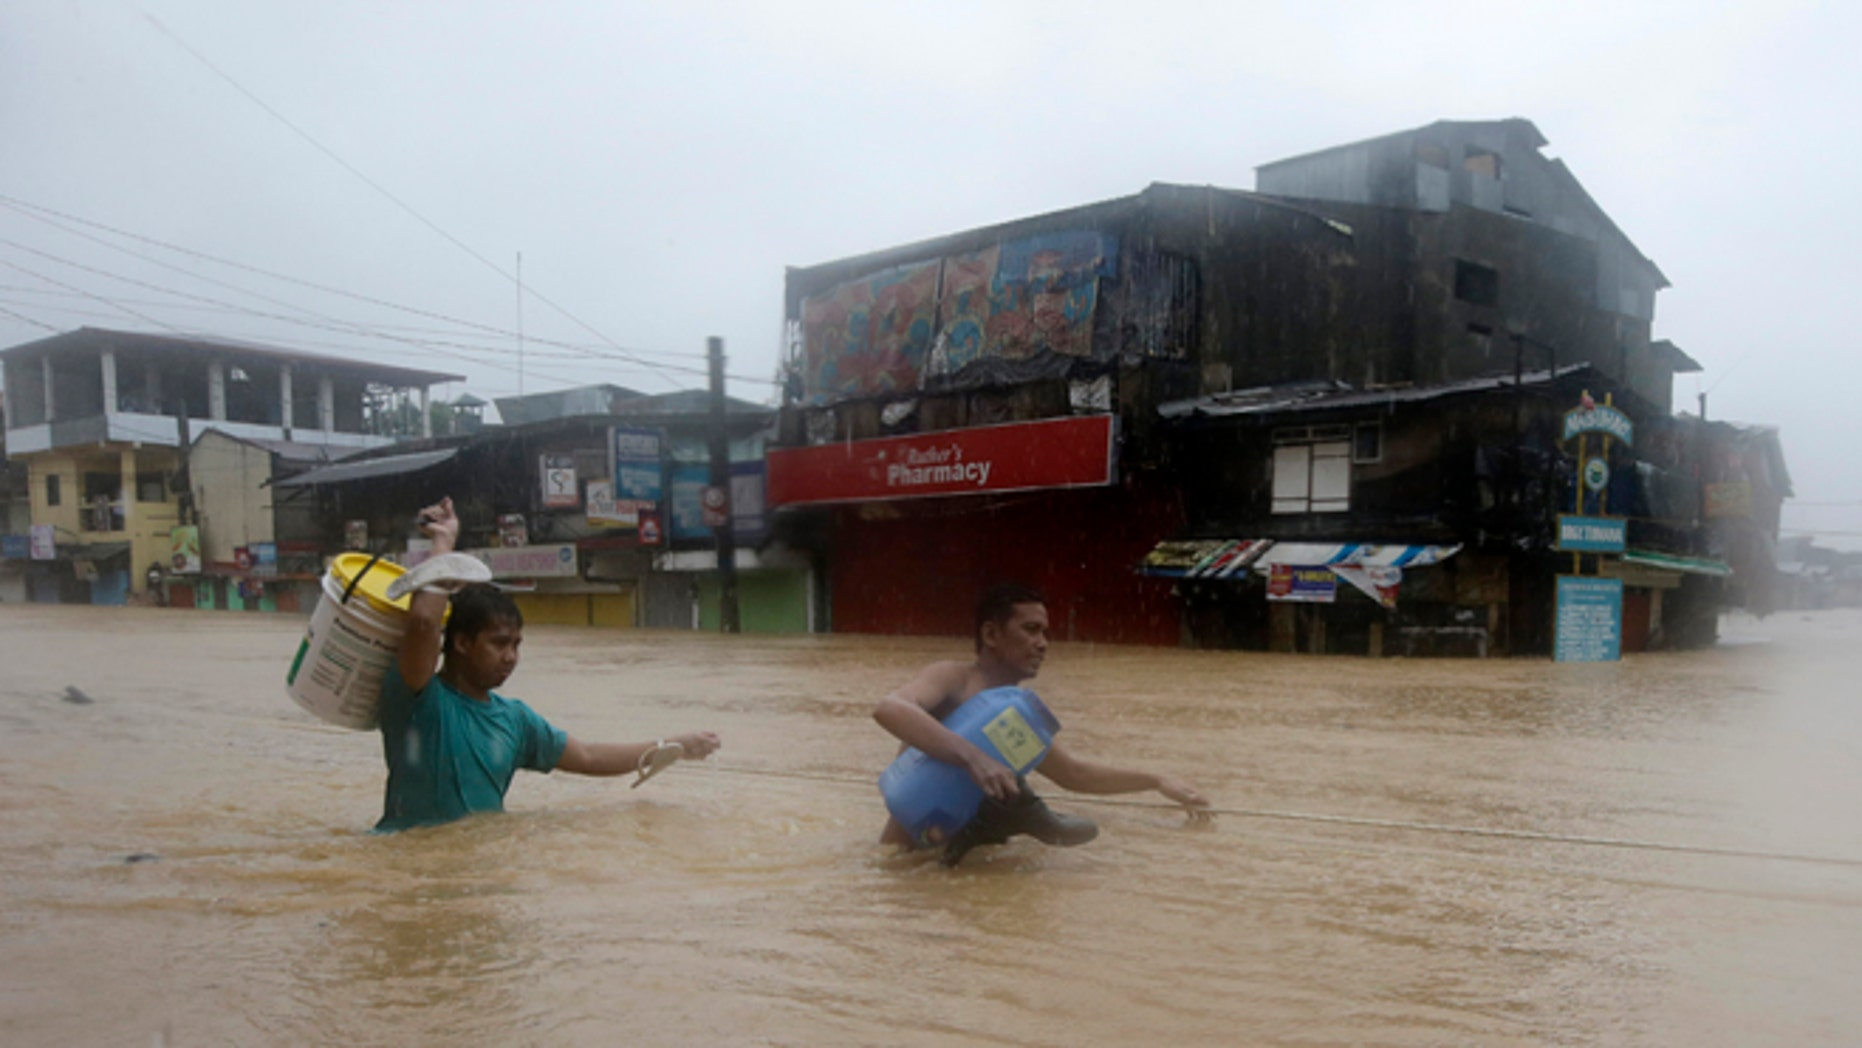 Sept. 19, 2014: Residents make their way through deep floodwaters after heavy monsoon rains spawned by Tropical Storm Fung-Wong flooded Marikina city, east of Manila, Philippines.